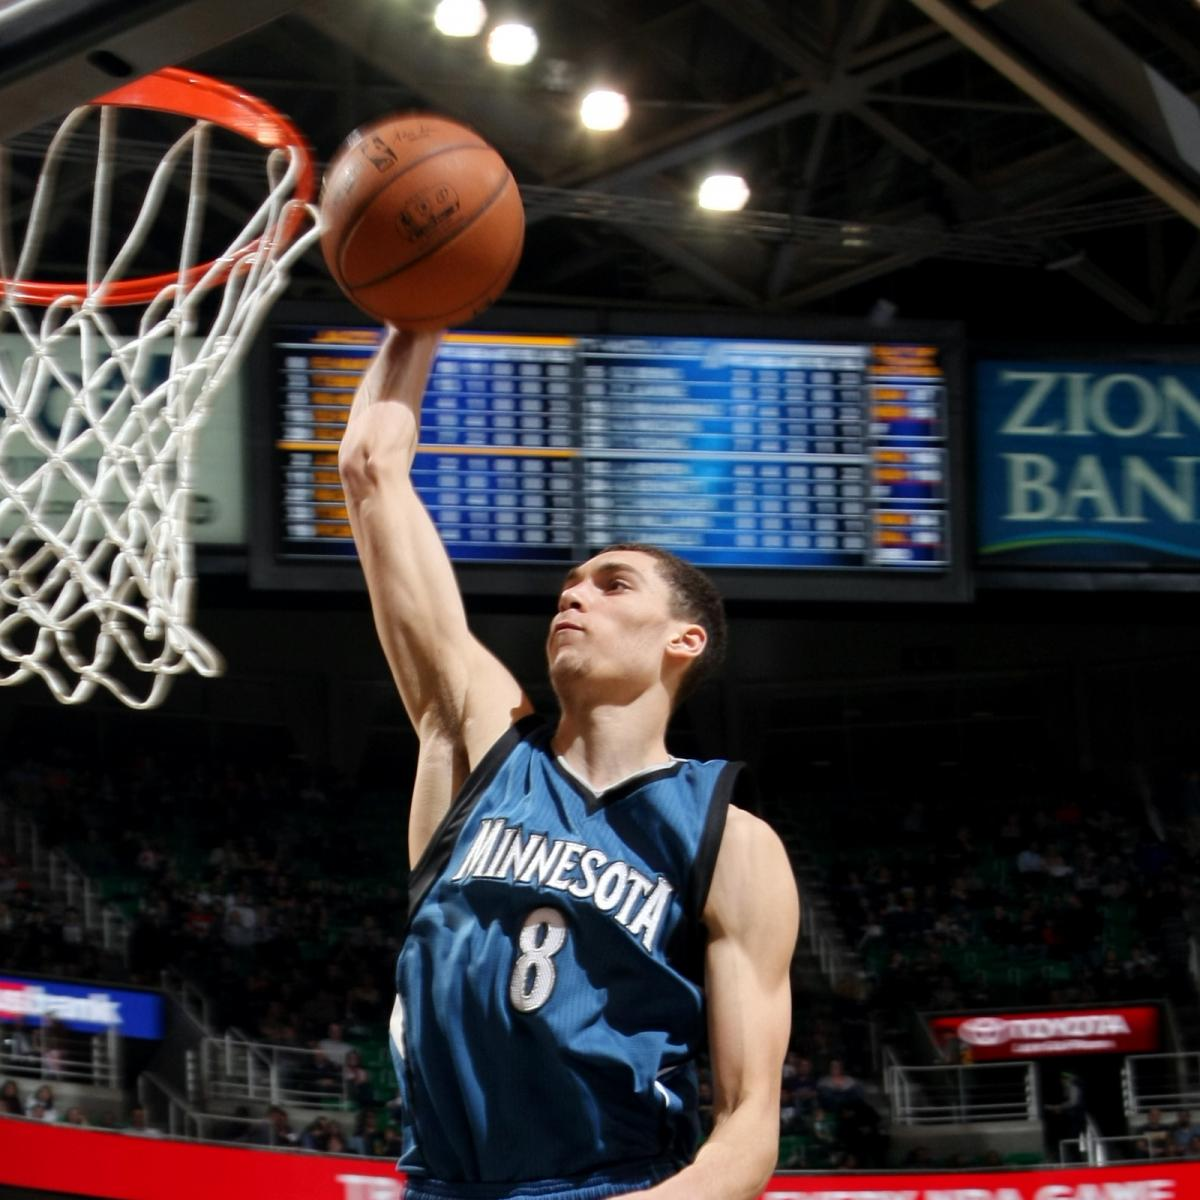 NBA Slam Dunk Contest 2015: Highlights For Top Stars And